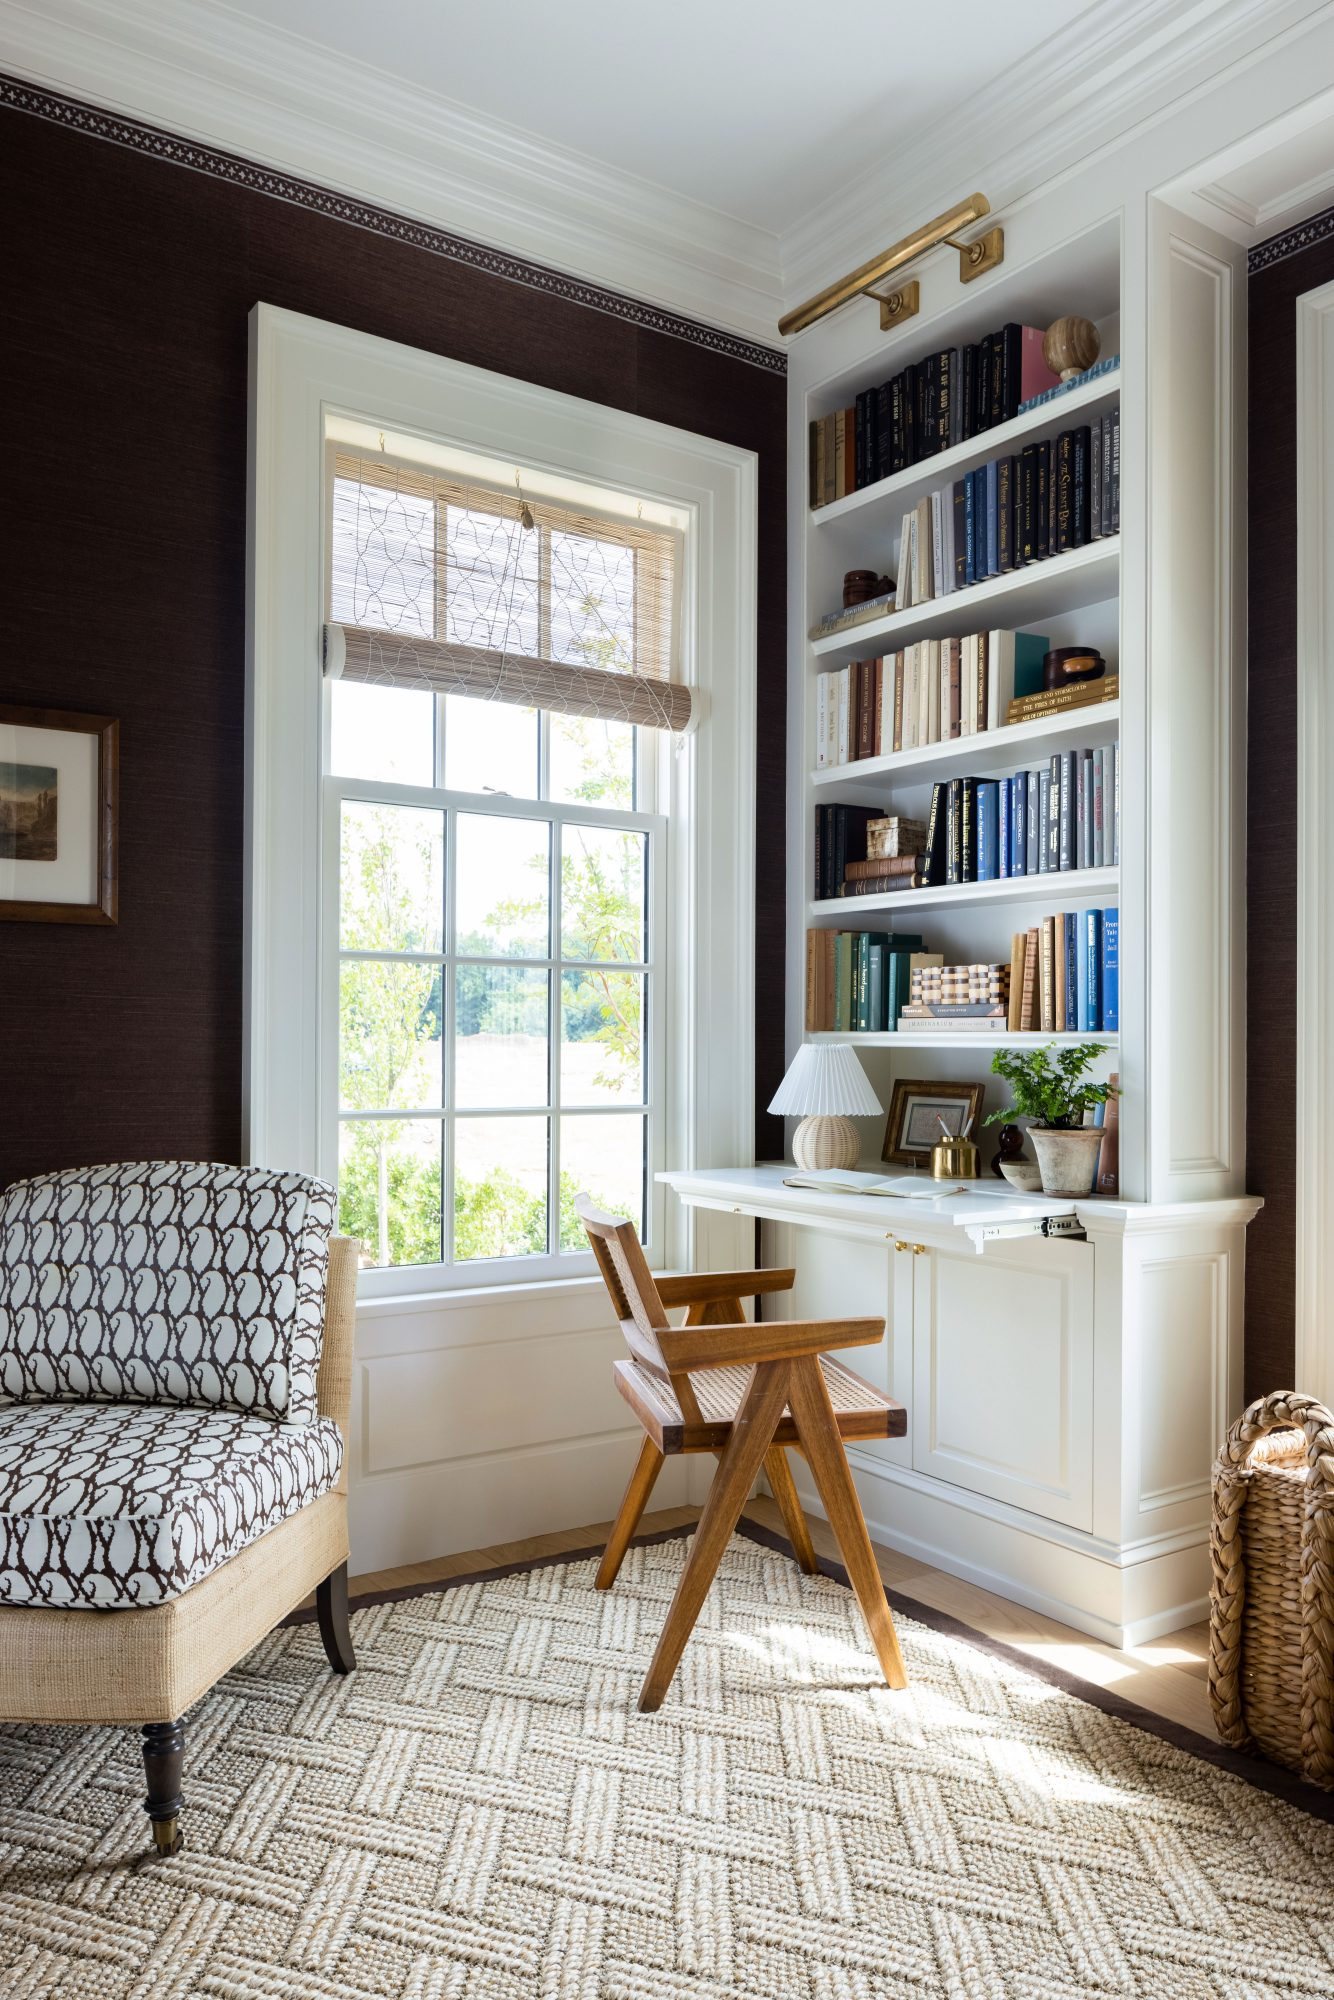 2021 Idea House Library Builtin Shelf and Pullout Desk